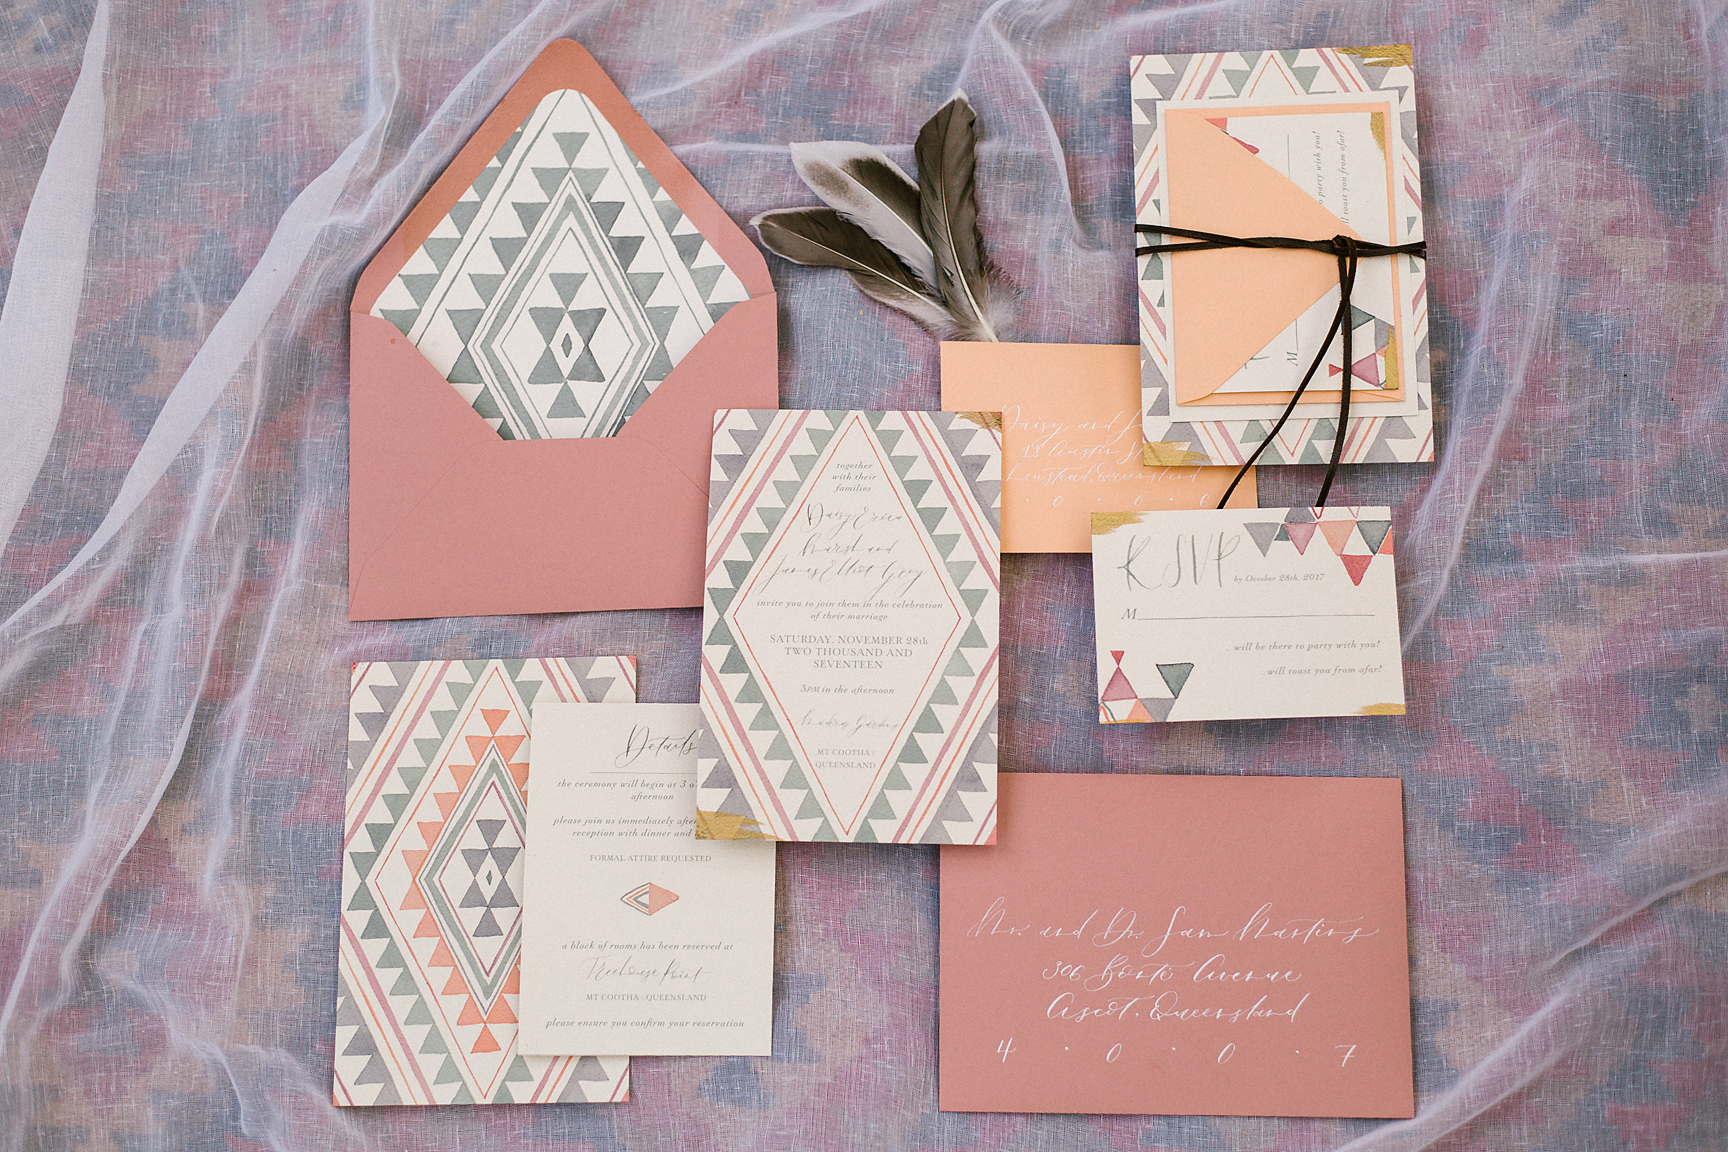 Stationery by Little Duck Calligraphy. Photography by Poppy & Sage Photography.